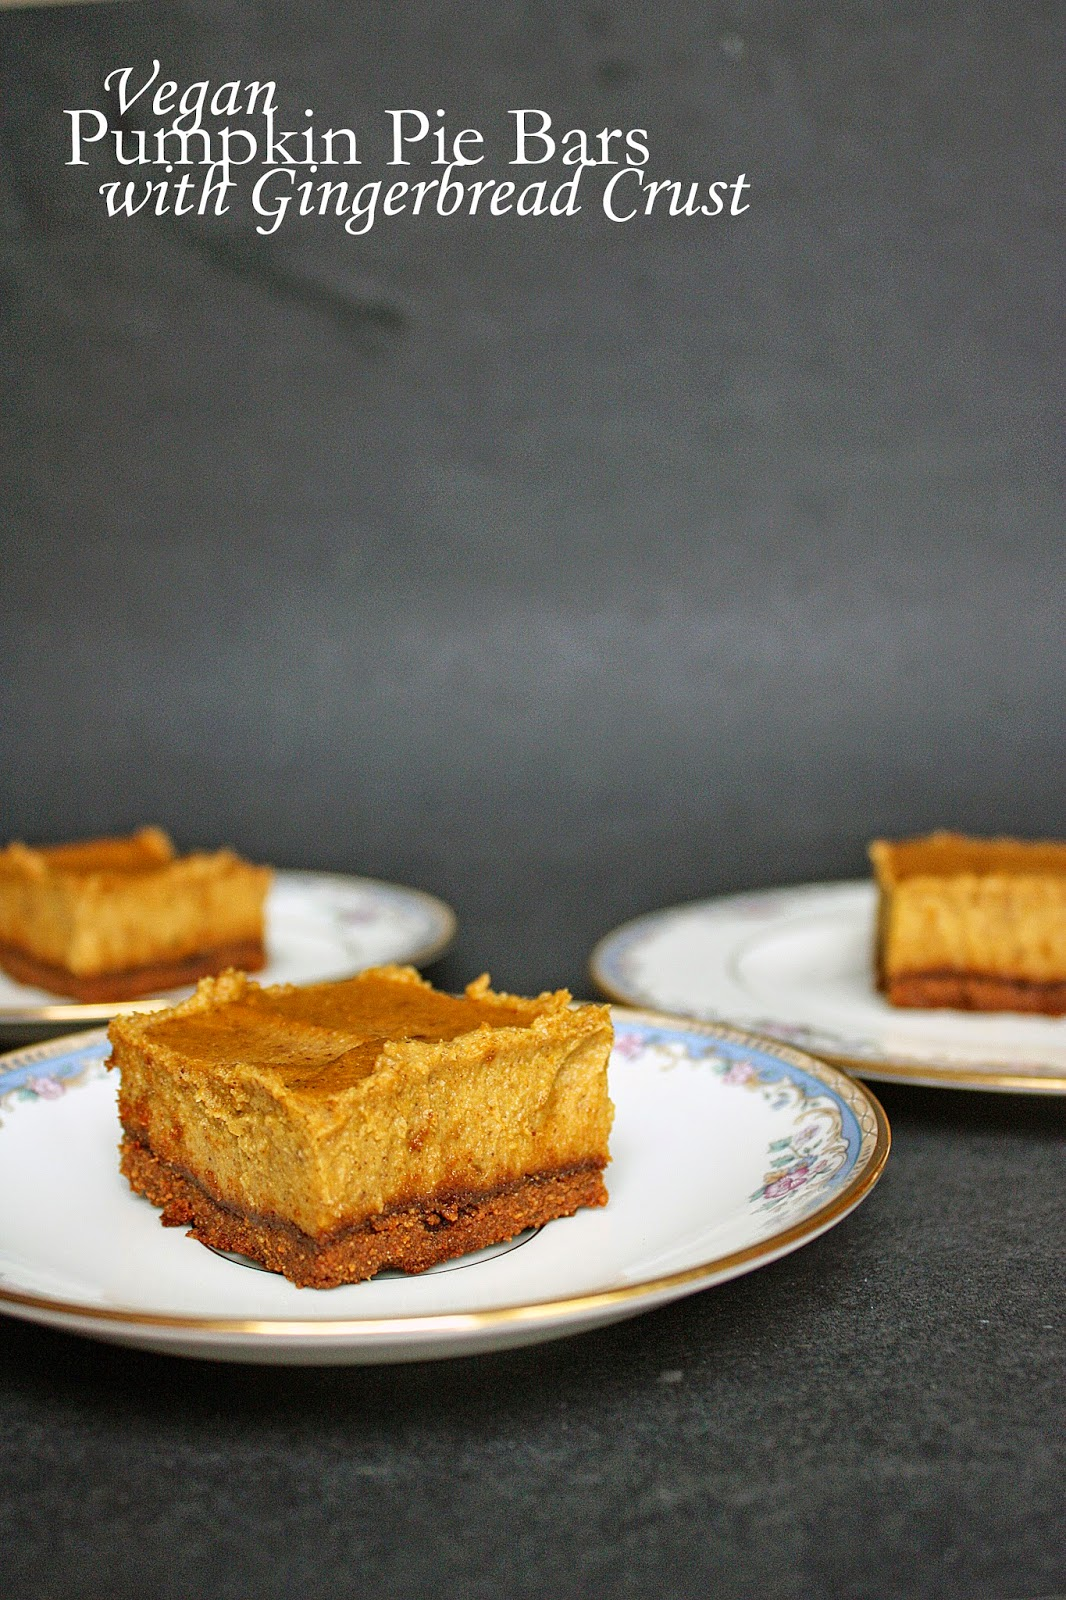 Gluten-free pumpkin pie cheesecake bars with gingerbread crust